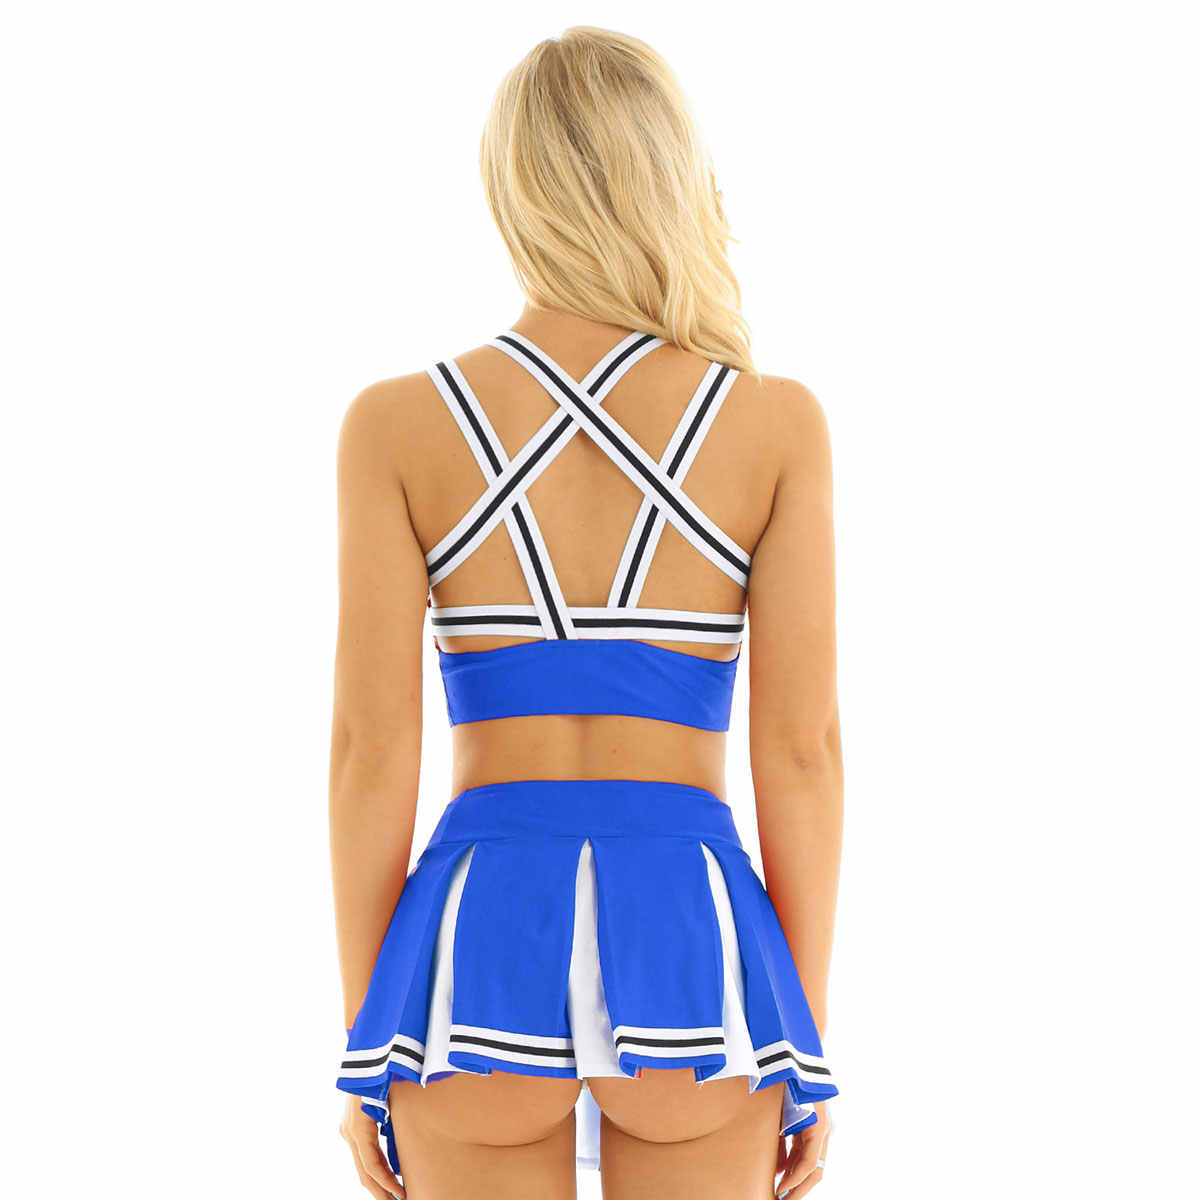 Frauen Erwachsene Charming Cheerleader Uniform Cosplay Clubwear Phantasie Kostüme Pentagramm Back Crop Top mit Mini Plissee Rock Set